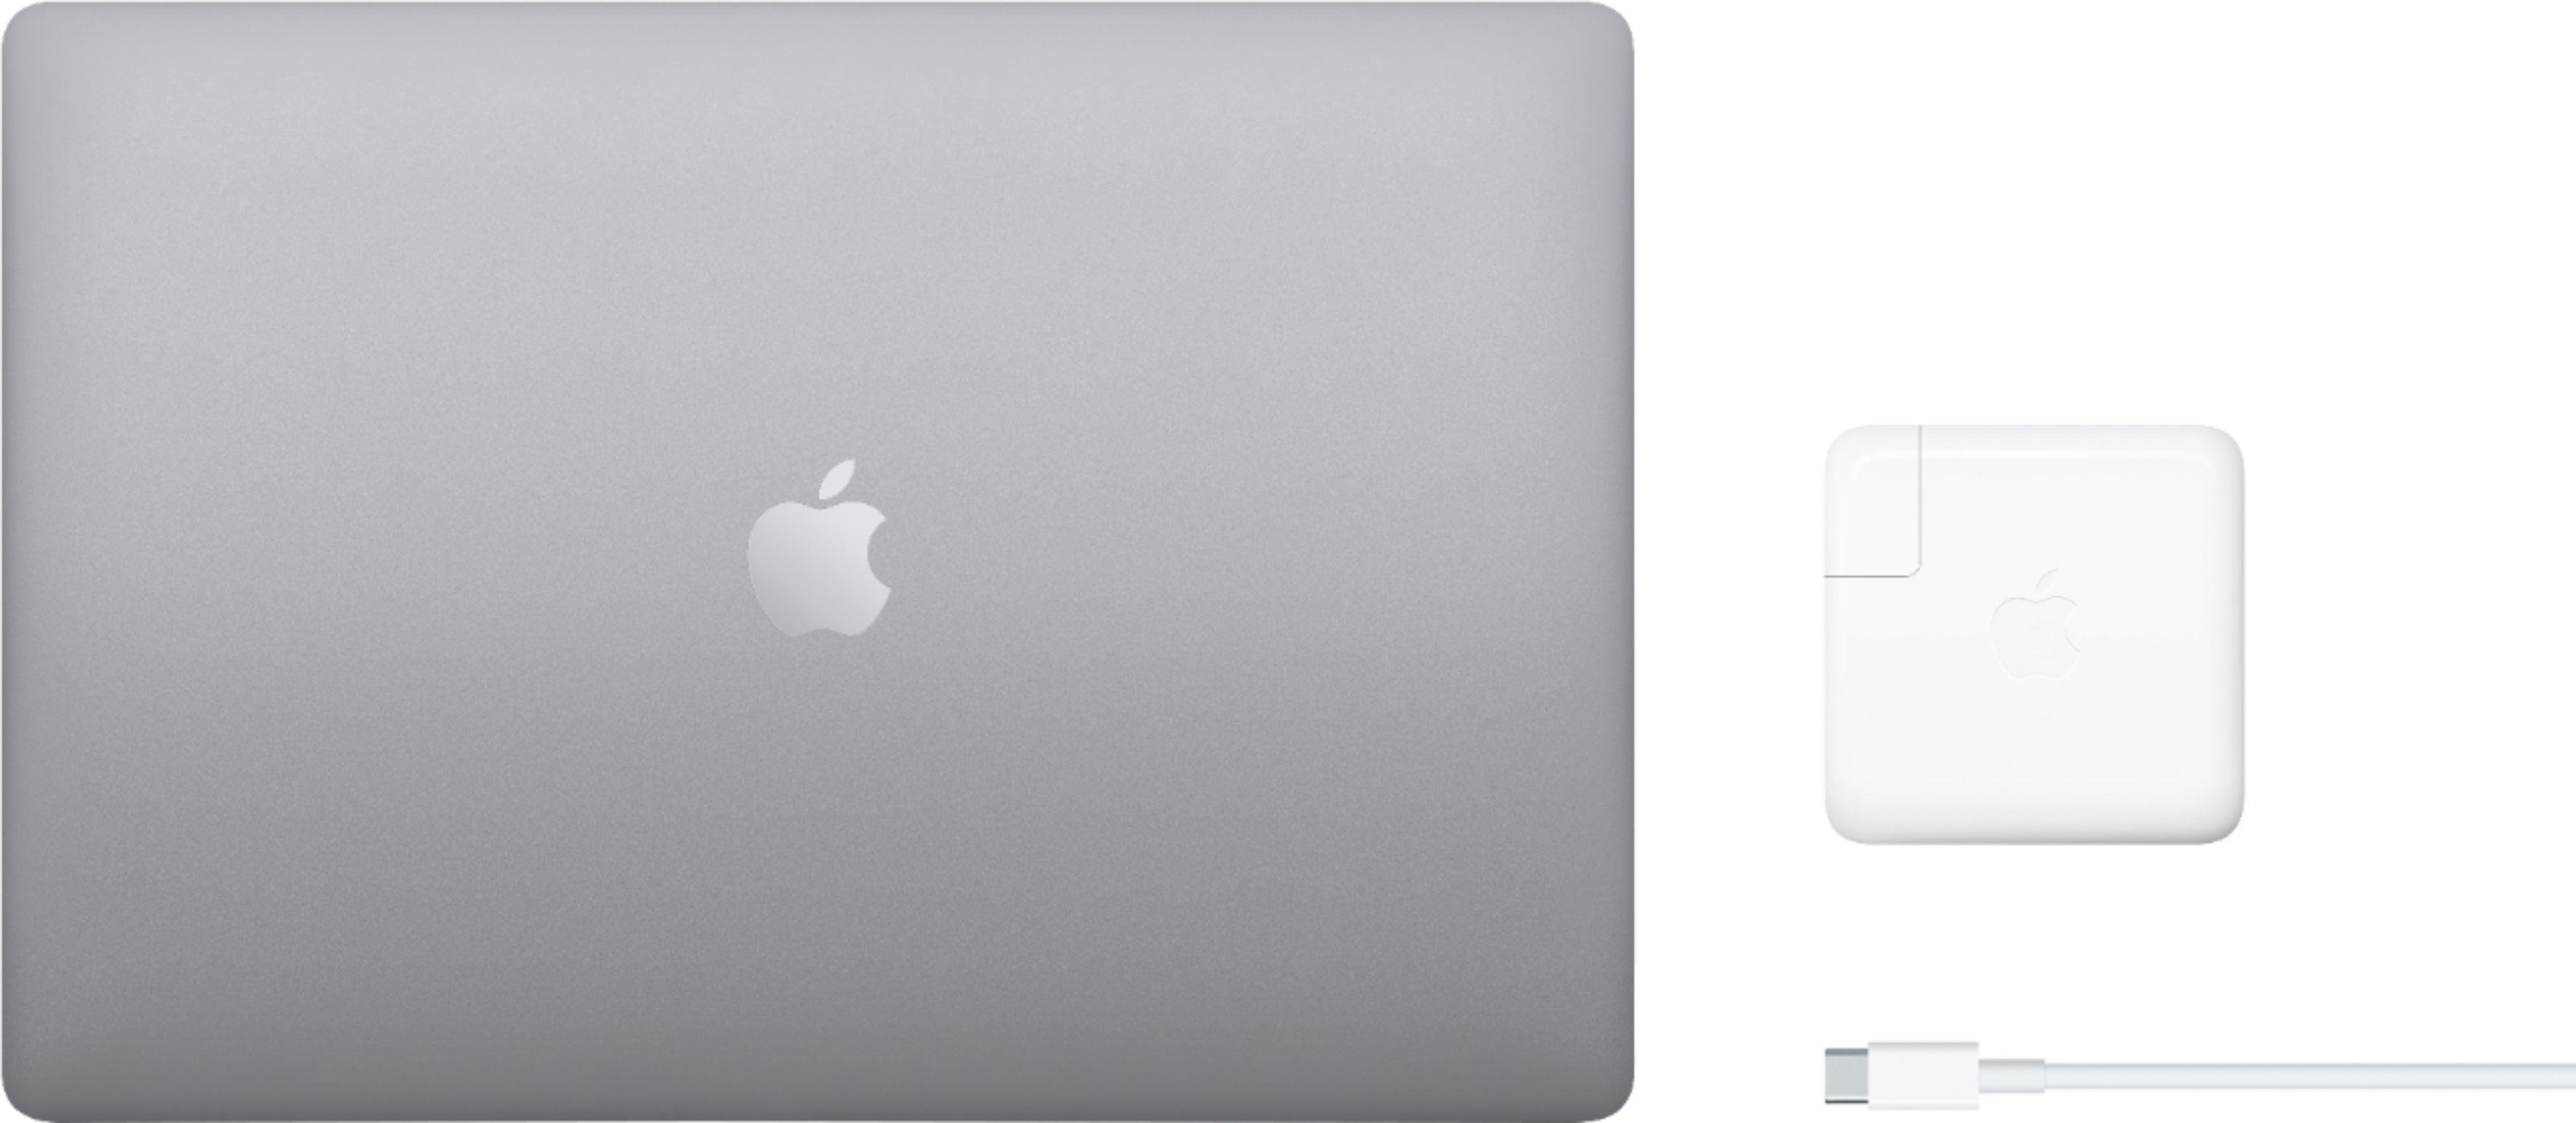 """Alt View Zoom 15. Apple - MacBook Pro - 16"""" Display with Touch Bar - Intel Core i9 - 16GB Memory - AMD Radeon Pro 5500M - 1TB SSD (Latest Model) - Space Gray."""